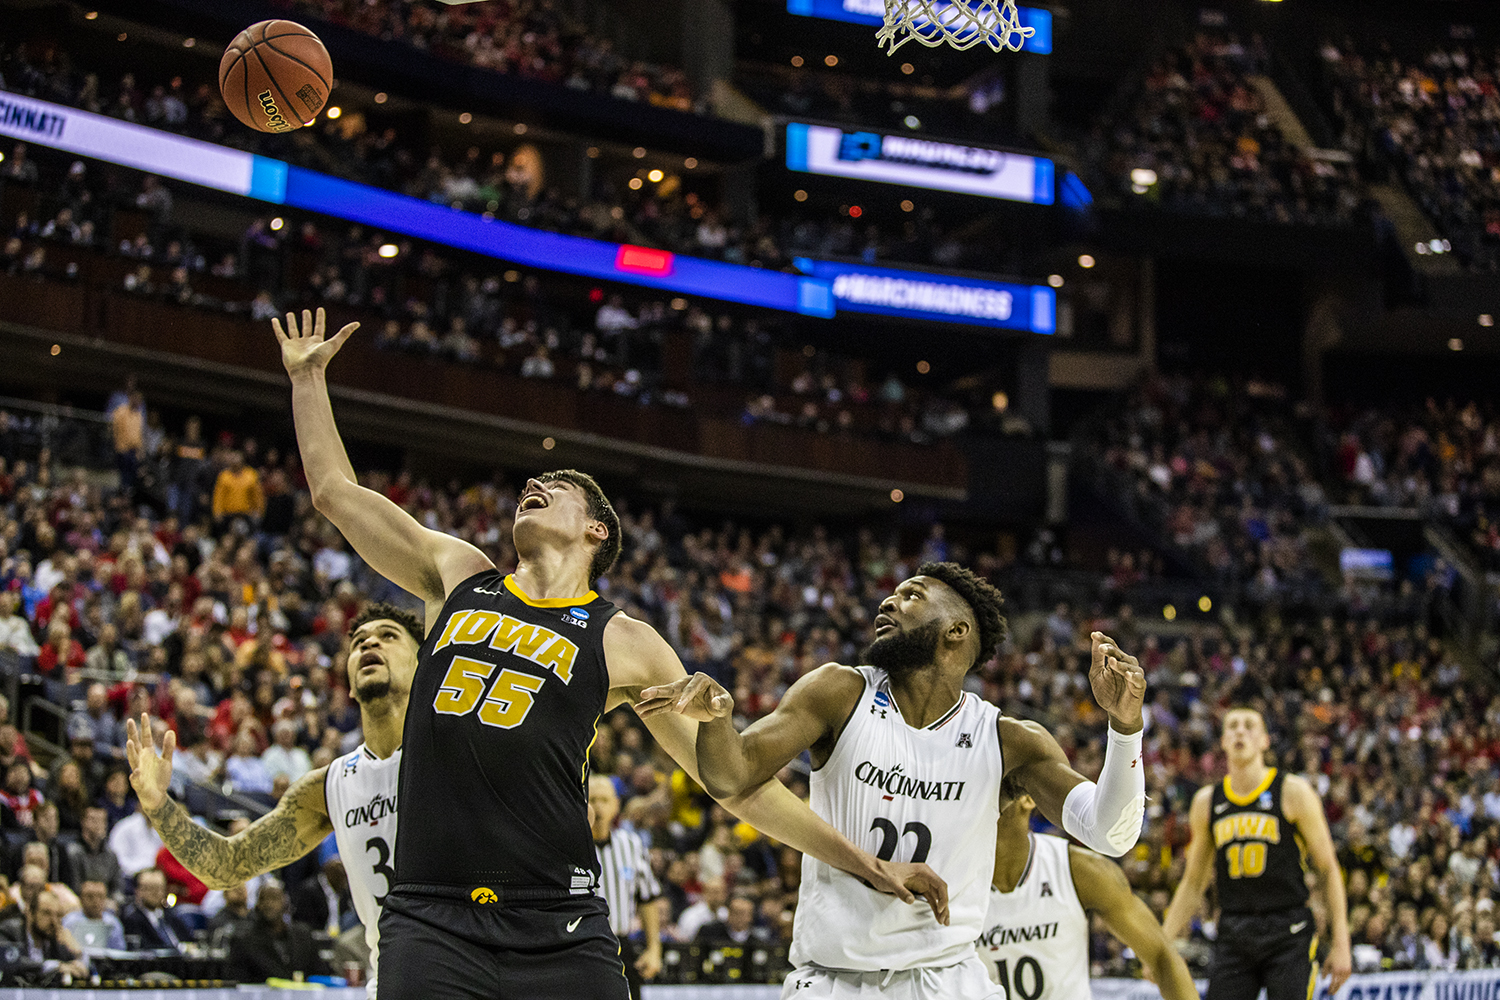 Iowa guard Luka Garza reaches for the ball during the NCAA game against Cincinnati at Nationwide Arena on Friday, March 22, 2019. The Hawkeyes defeated the Bearcats 79-72.